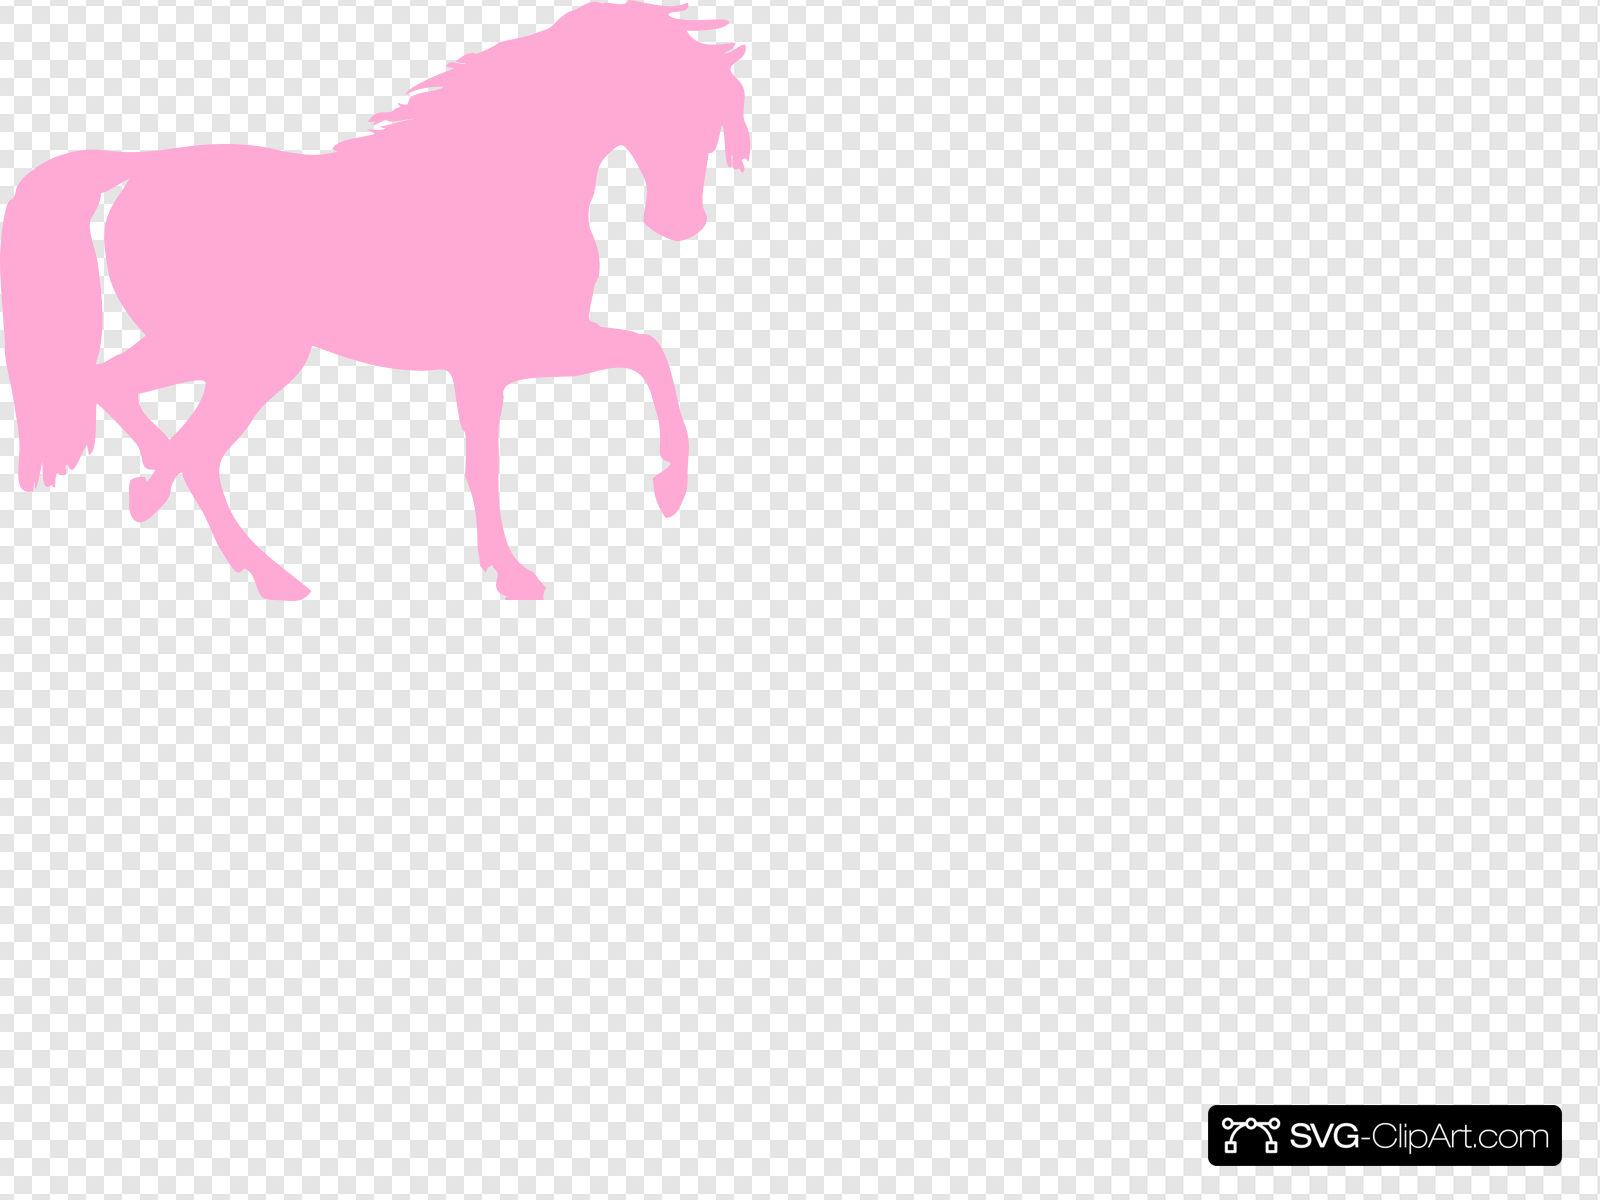 Pink Horse Clip art, Icon and SVG.